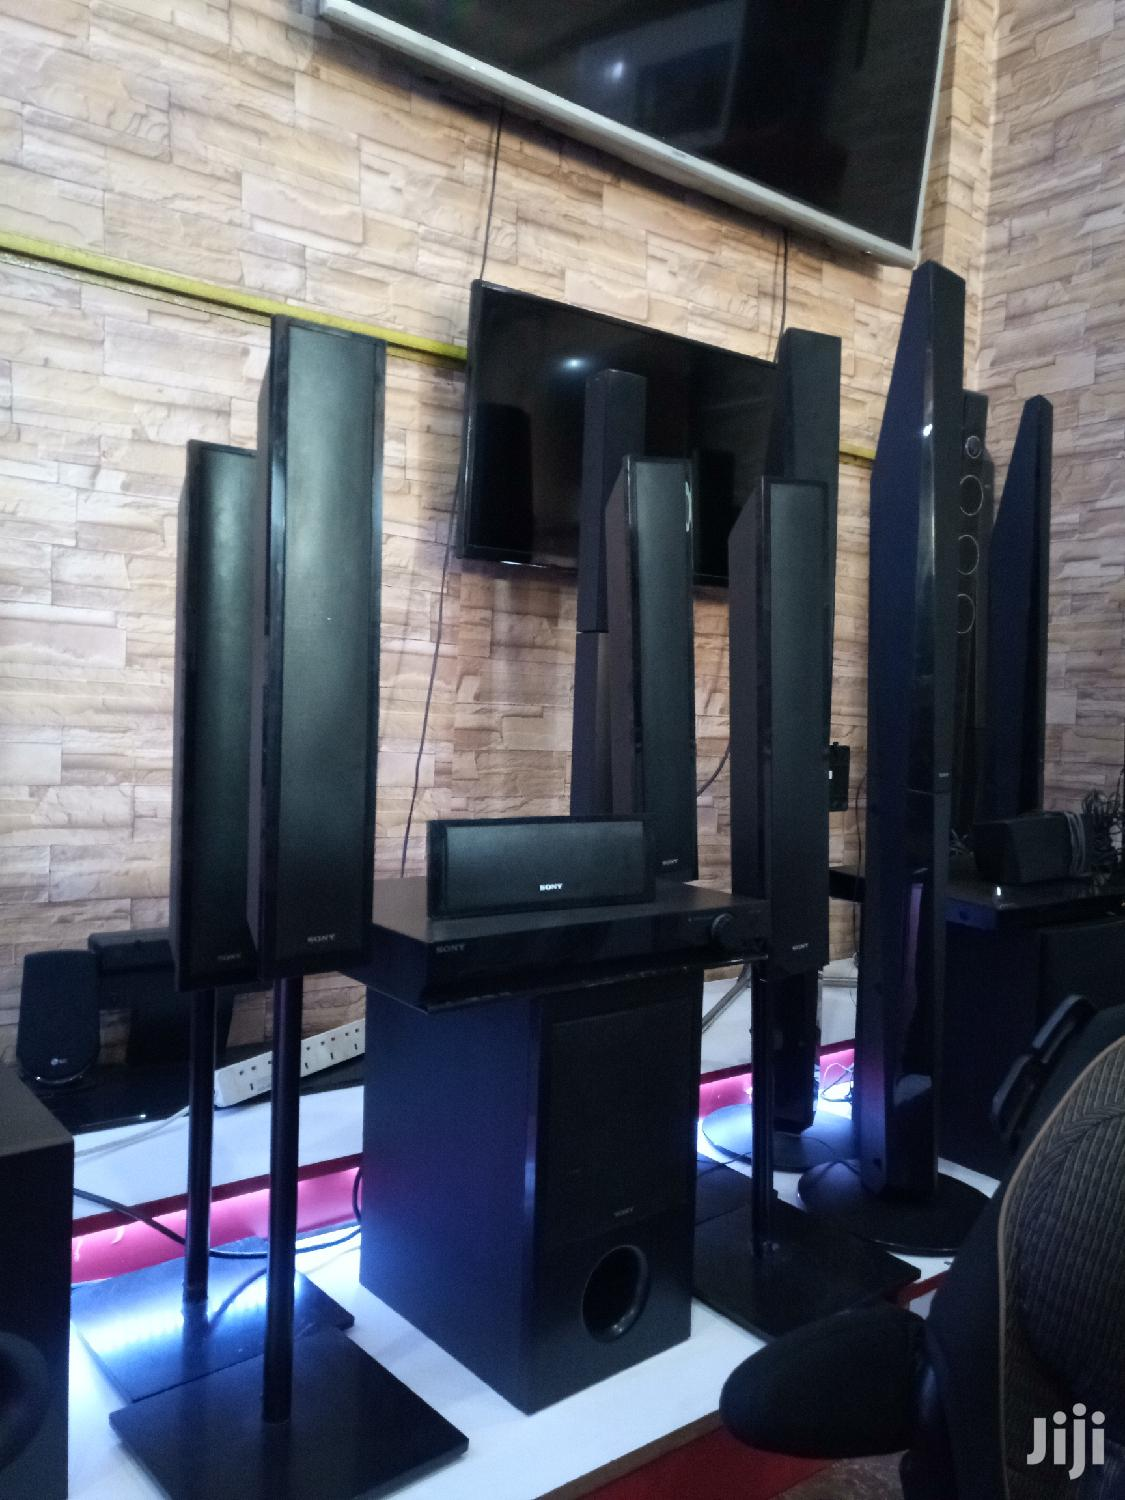 Archive: 1200watts SONY Home Theatre Sound System